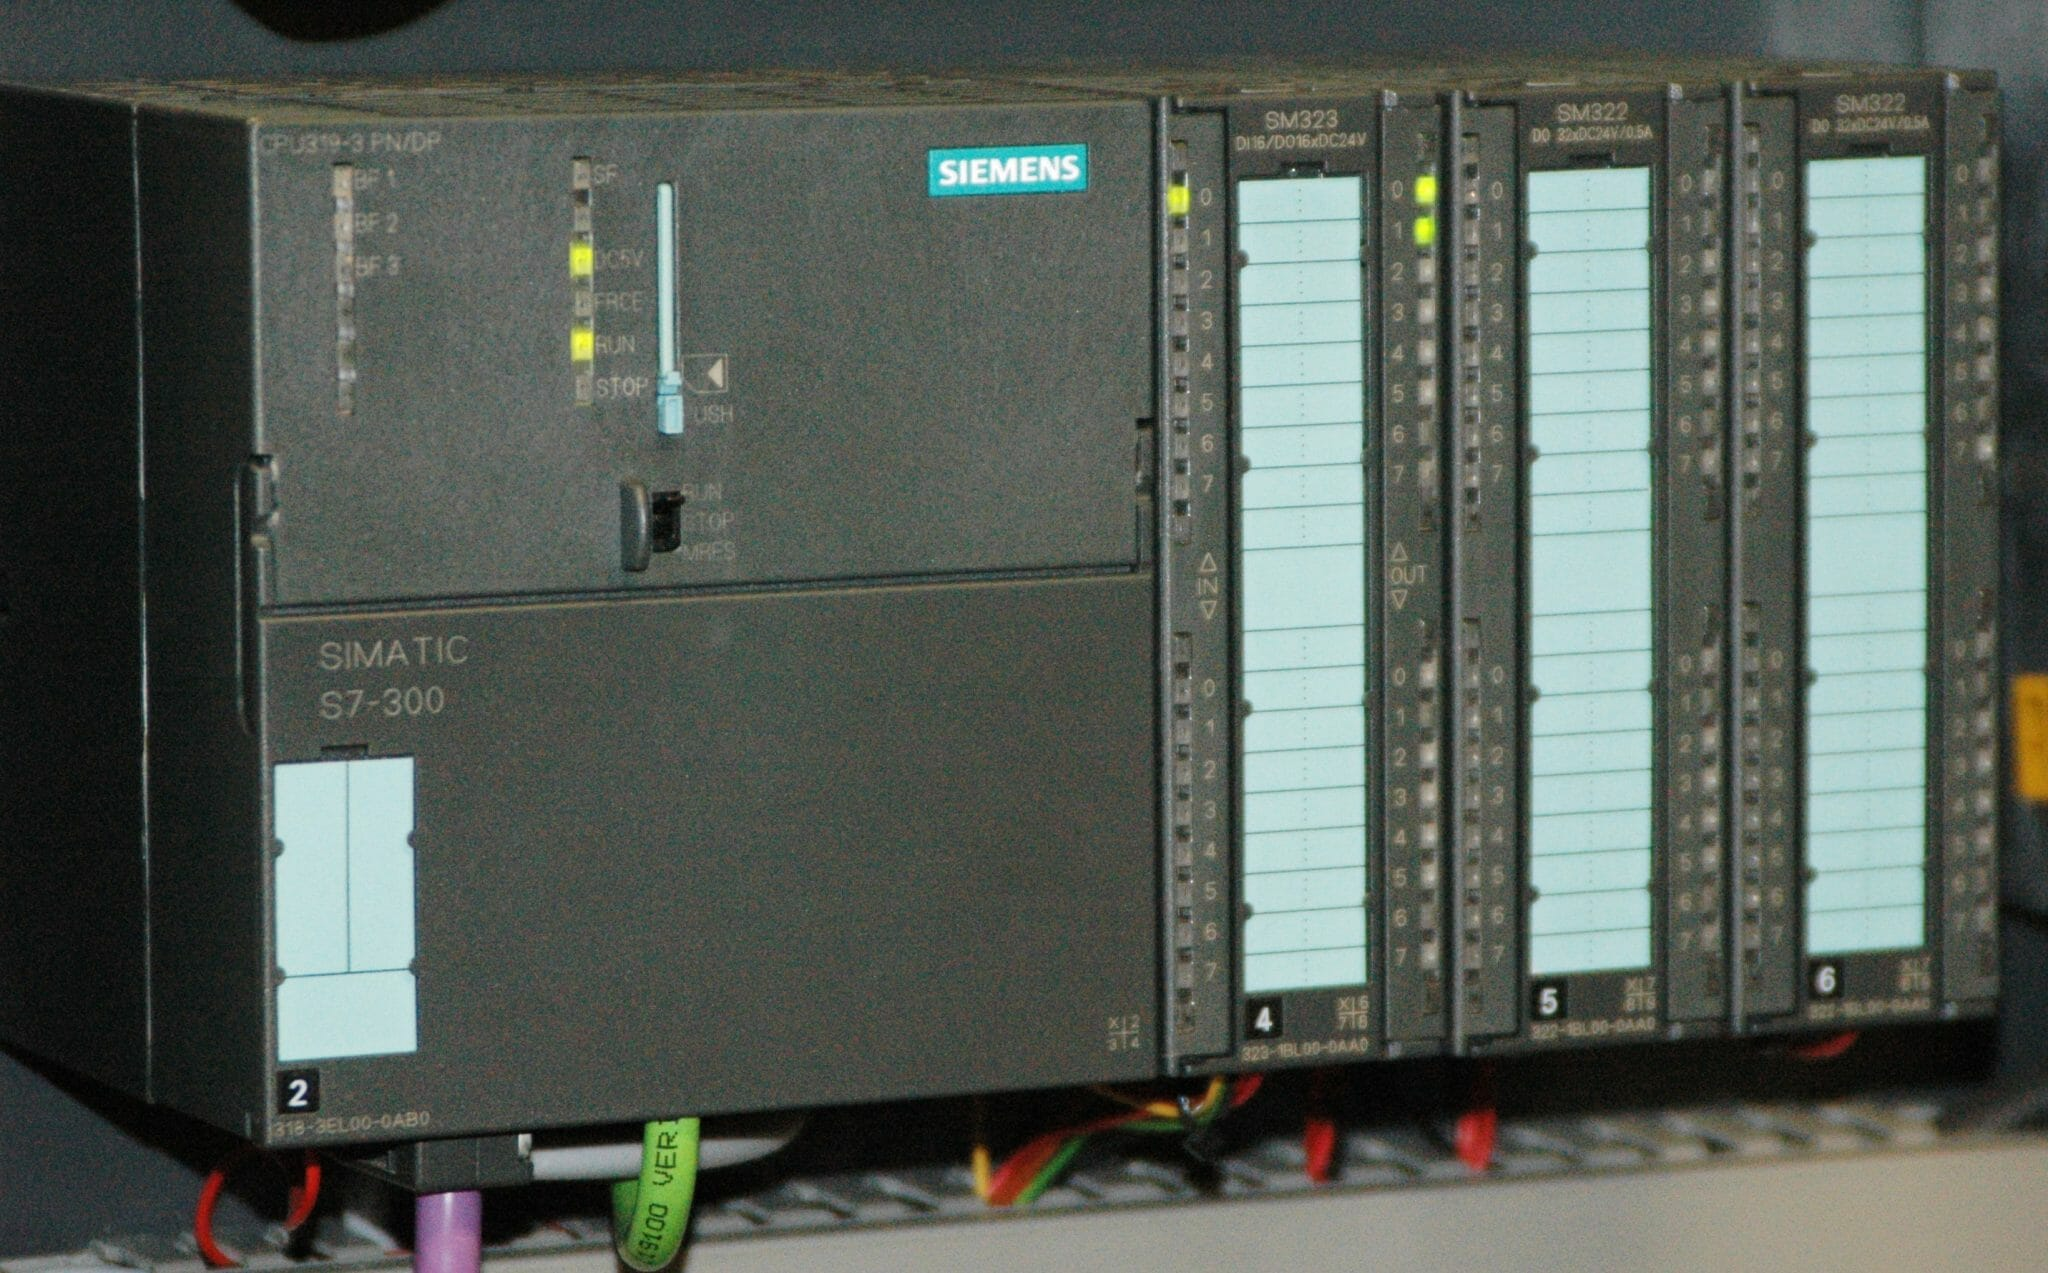 Siemens Simatic S7-300 PLC CPU with three I/O modules attached, Image By Ulli1105 - Own work, CC BY-SA 2.5, https://commons.wikimedia.org/w/index.php?curid=1623227